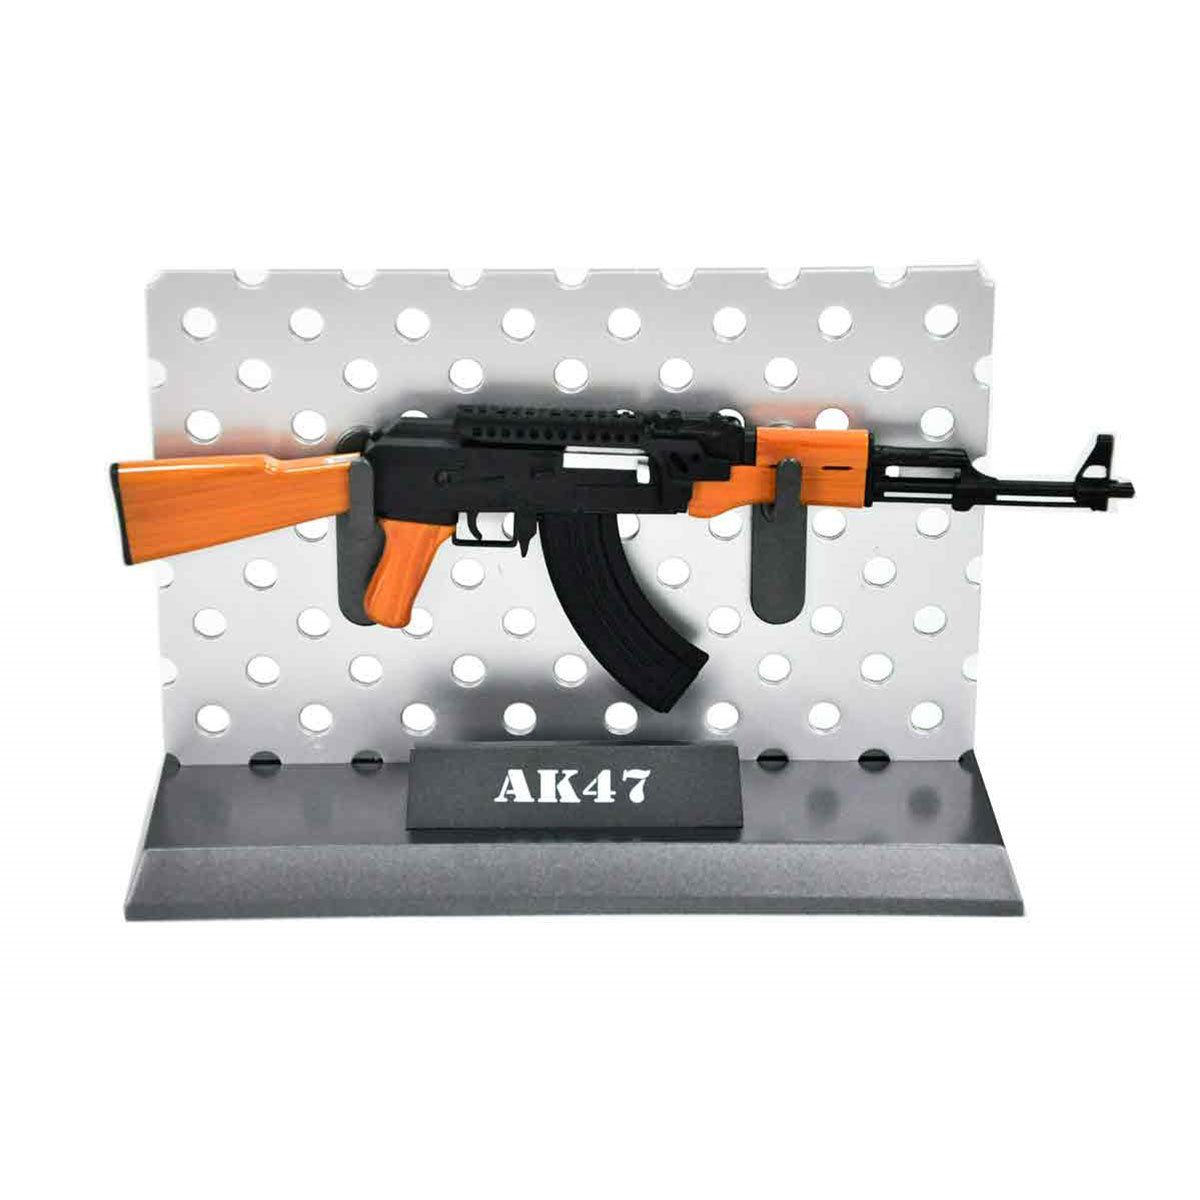 Miniatura de Arma Rifle AK47 Arsenal Guns